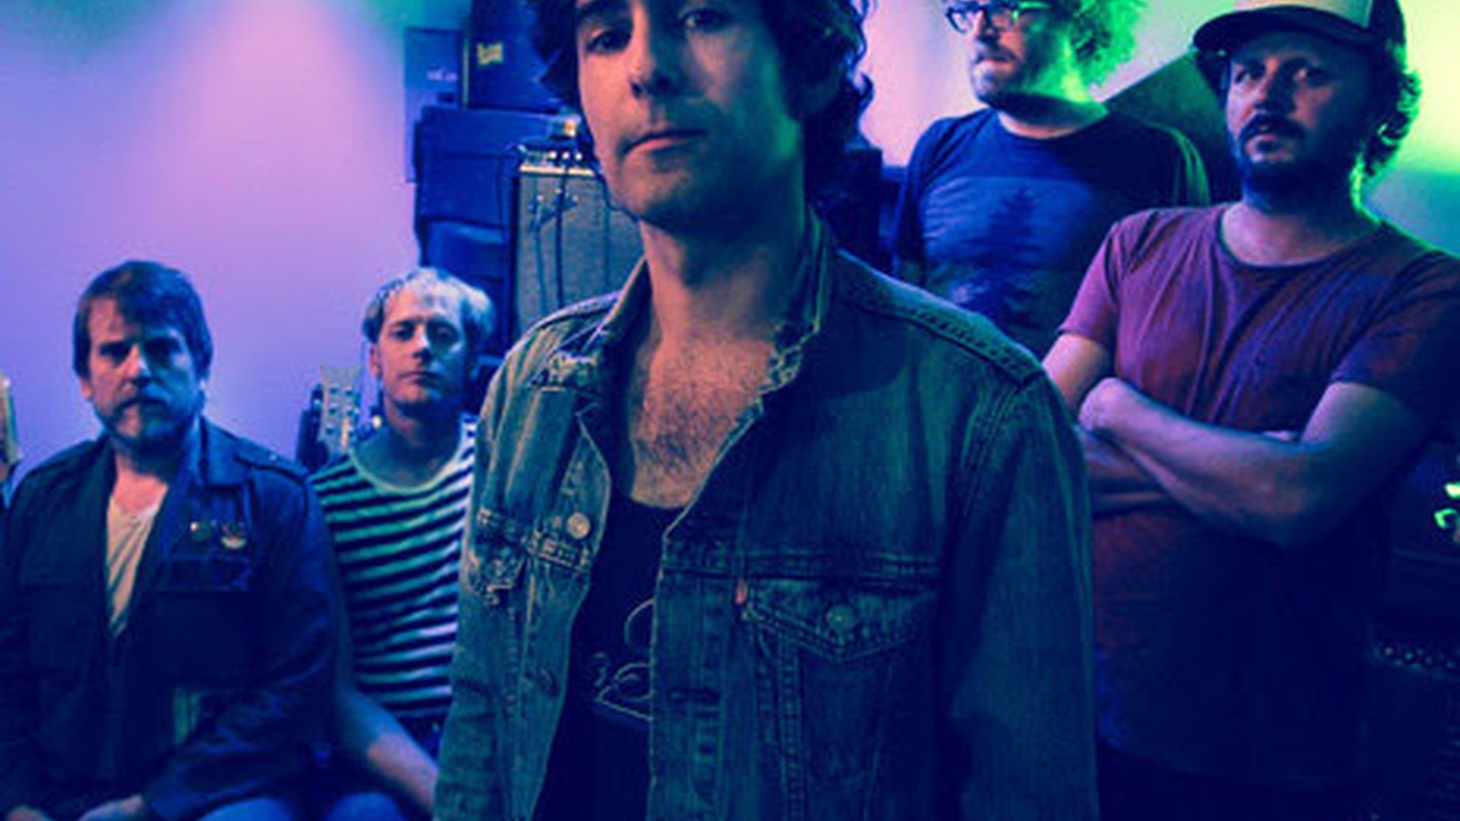 Born of a stage production of its musical/rock opera, Blitzen Trapper's Wild & Reckless hones in on a bygone era of the band's hometown of Portland with a Sci-Fi love story.